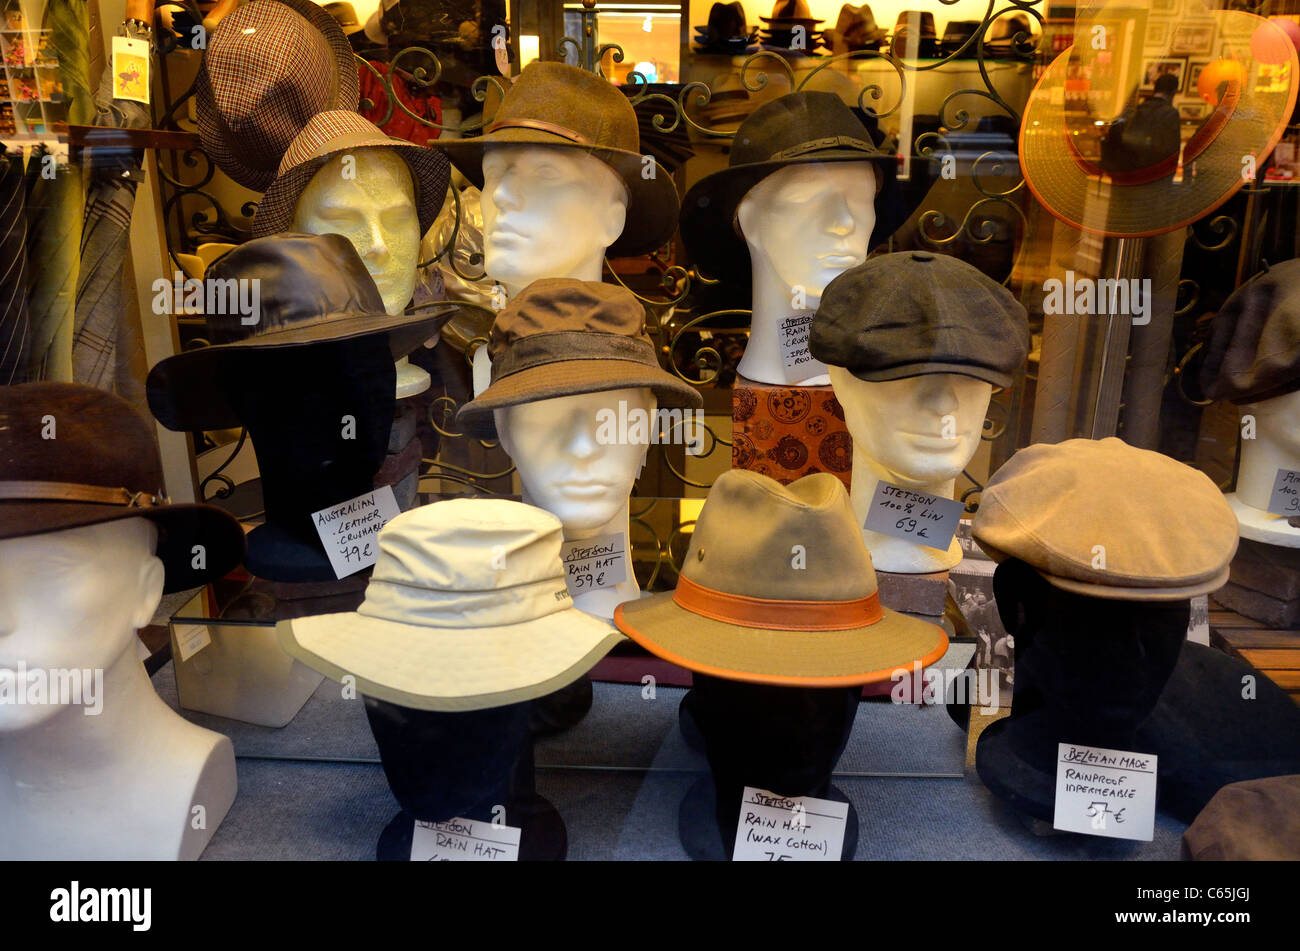 a7dfe55969cfb Hats In Shop Window Stock Photos   Hats In Shop Window Stock Images ...